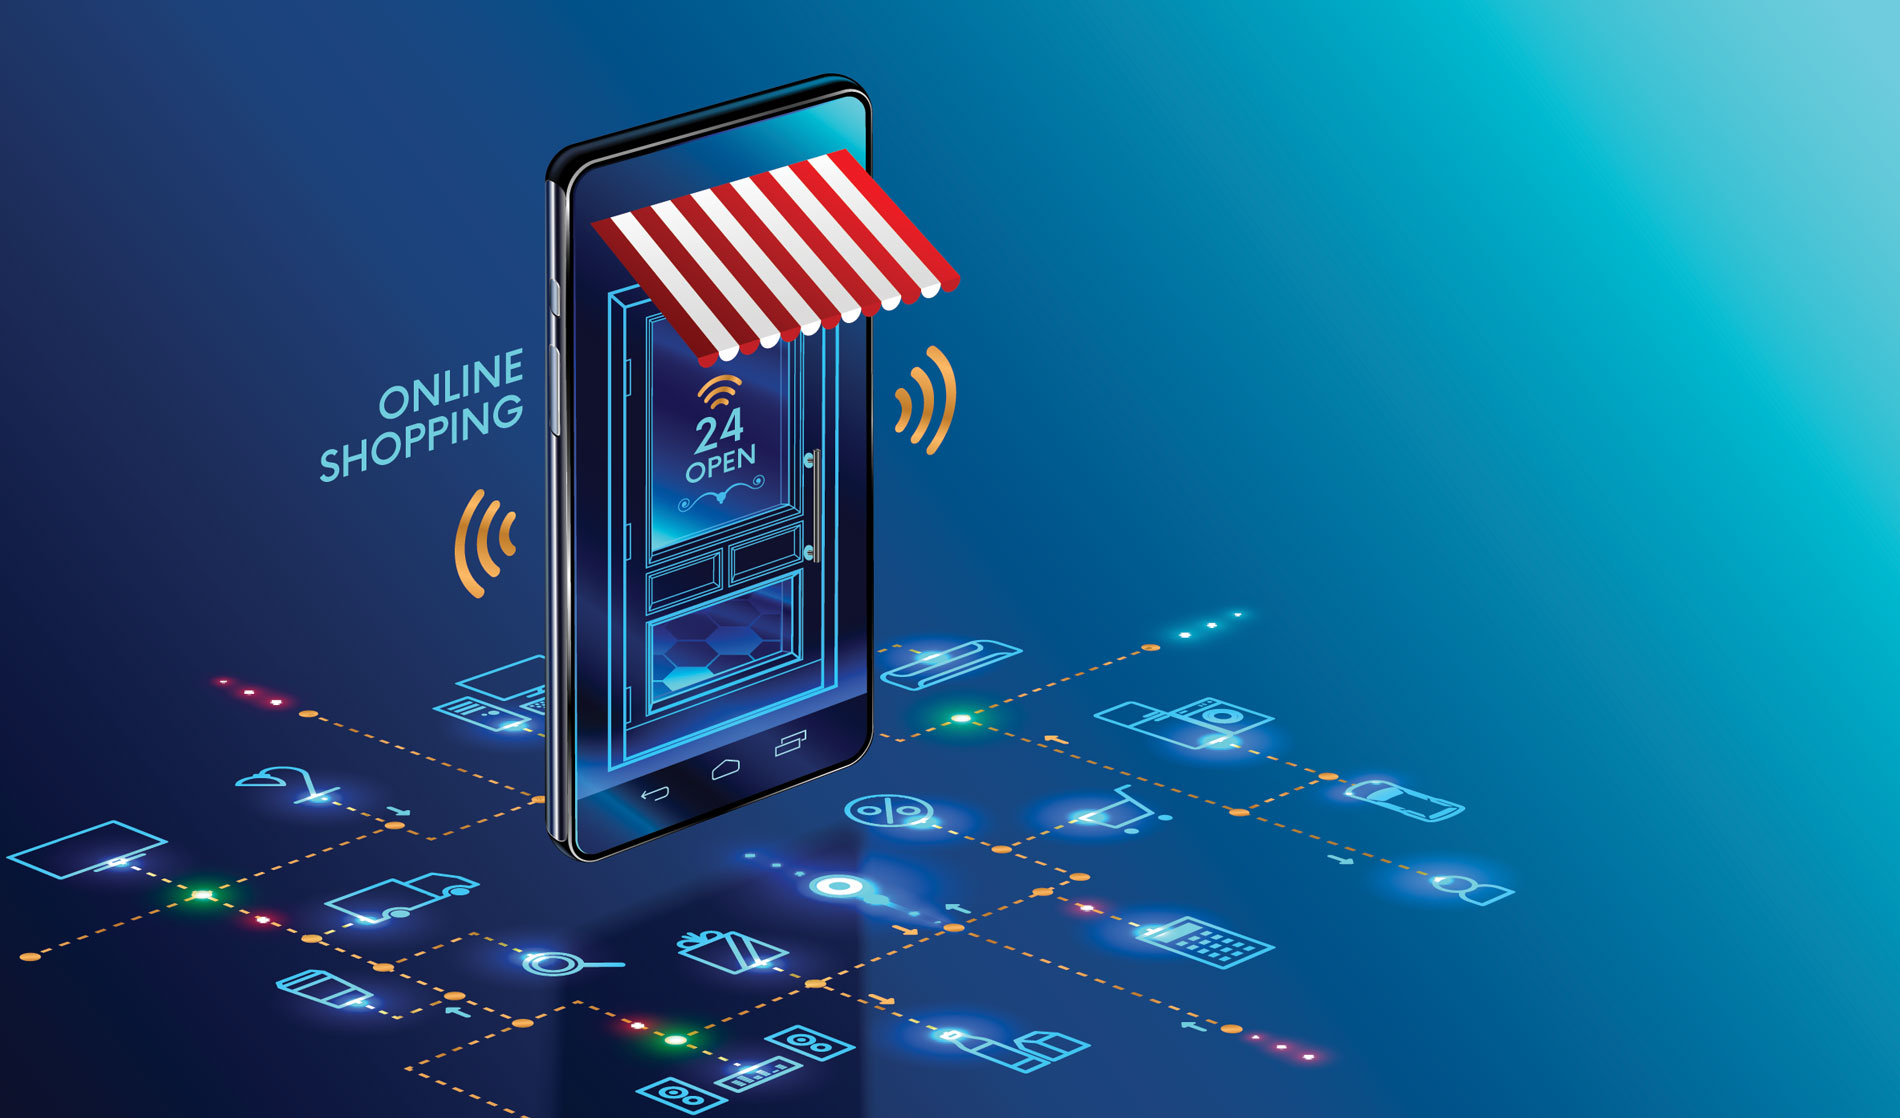 Best eCommerce Marketing Channels to Use in 2021